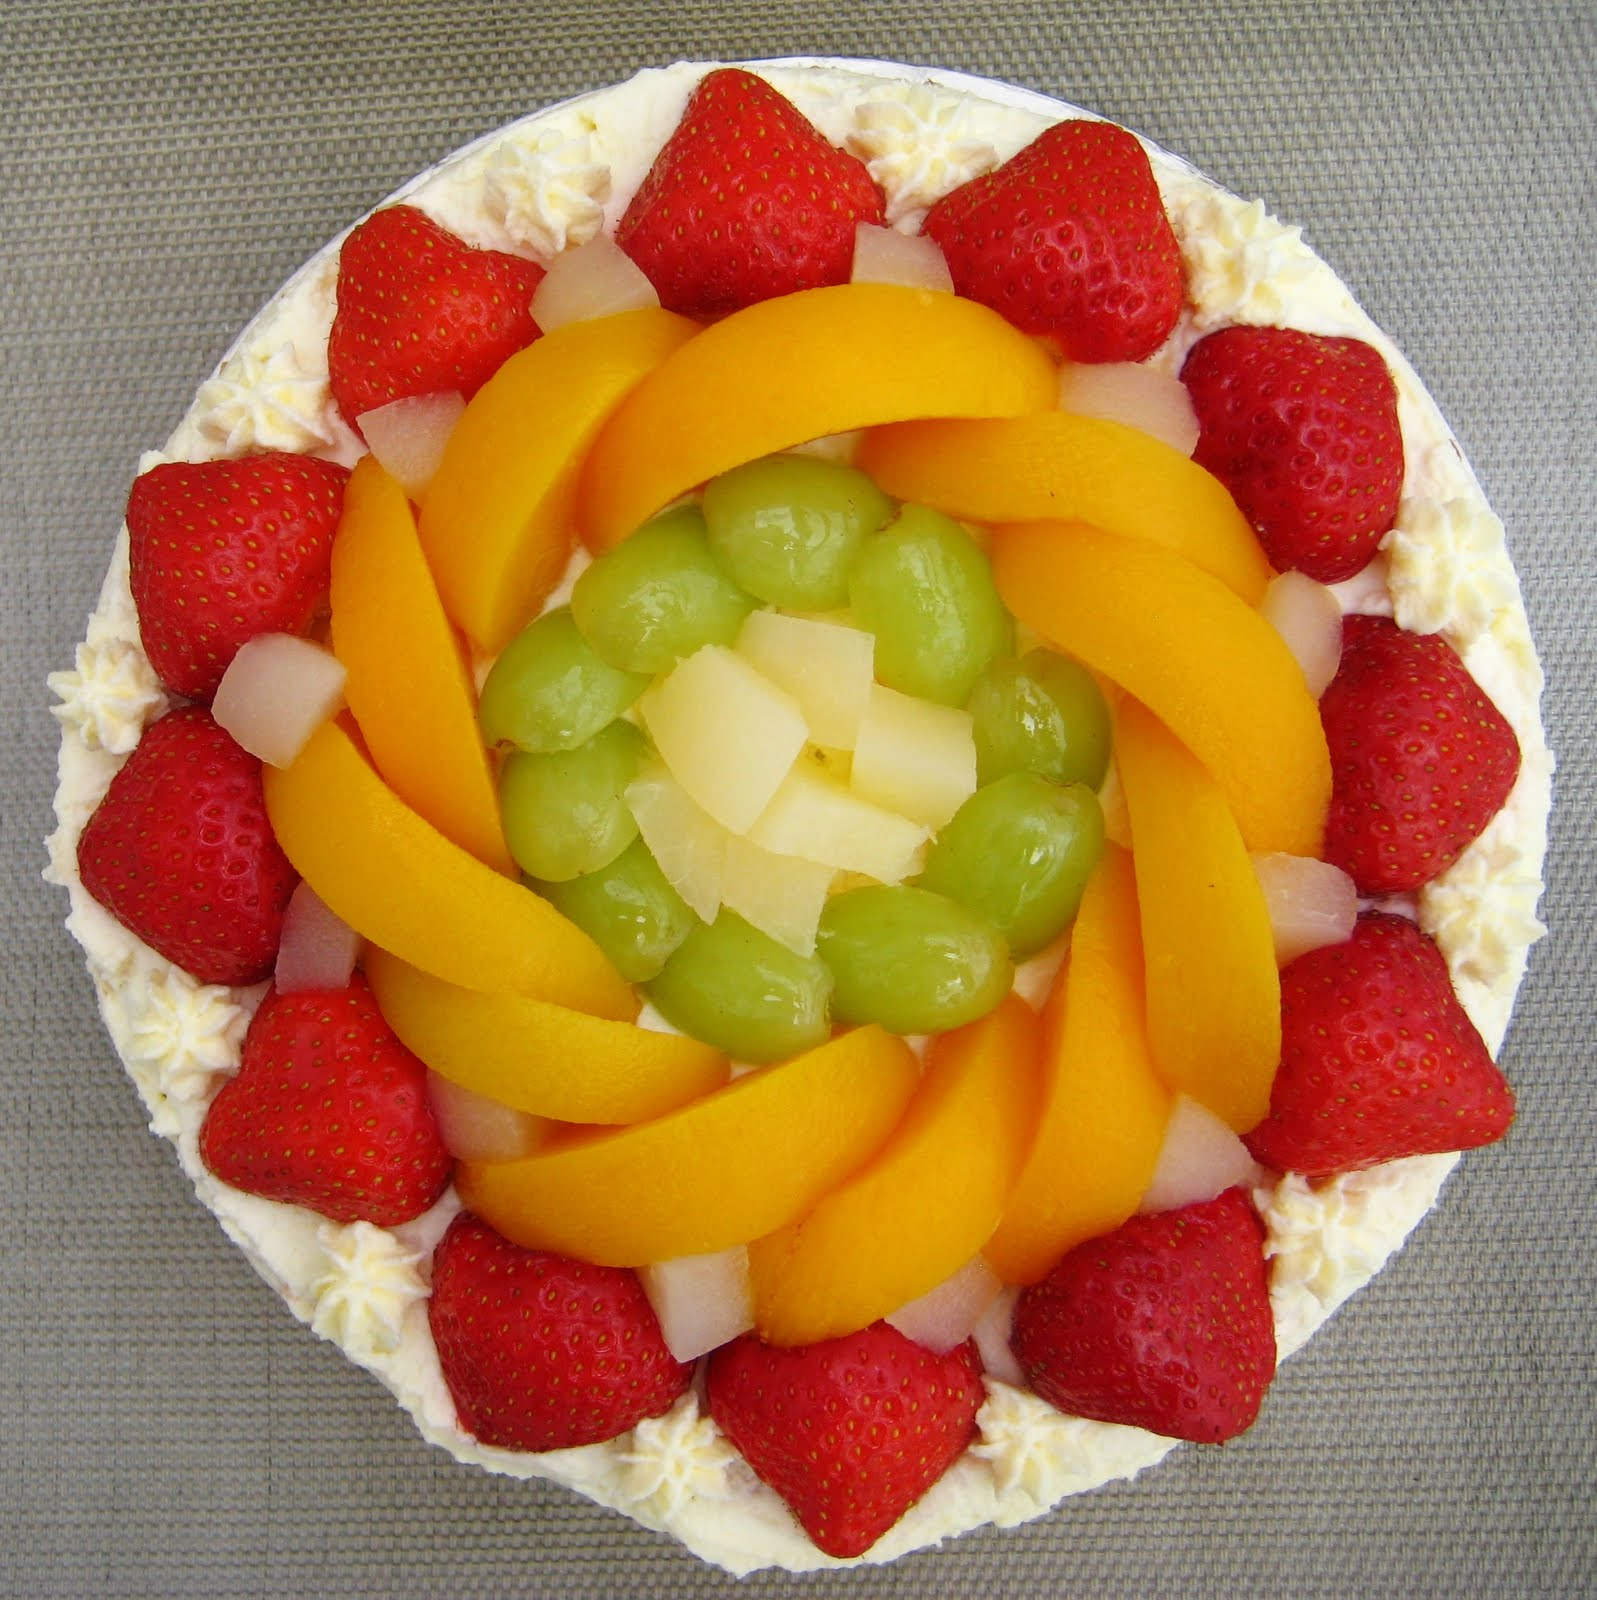 Asian Bakery Fruit Cake